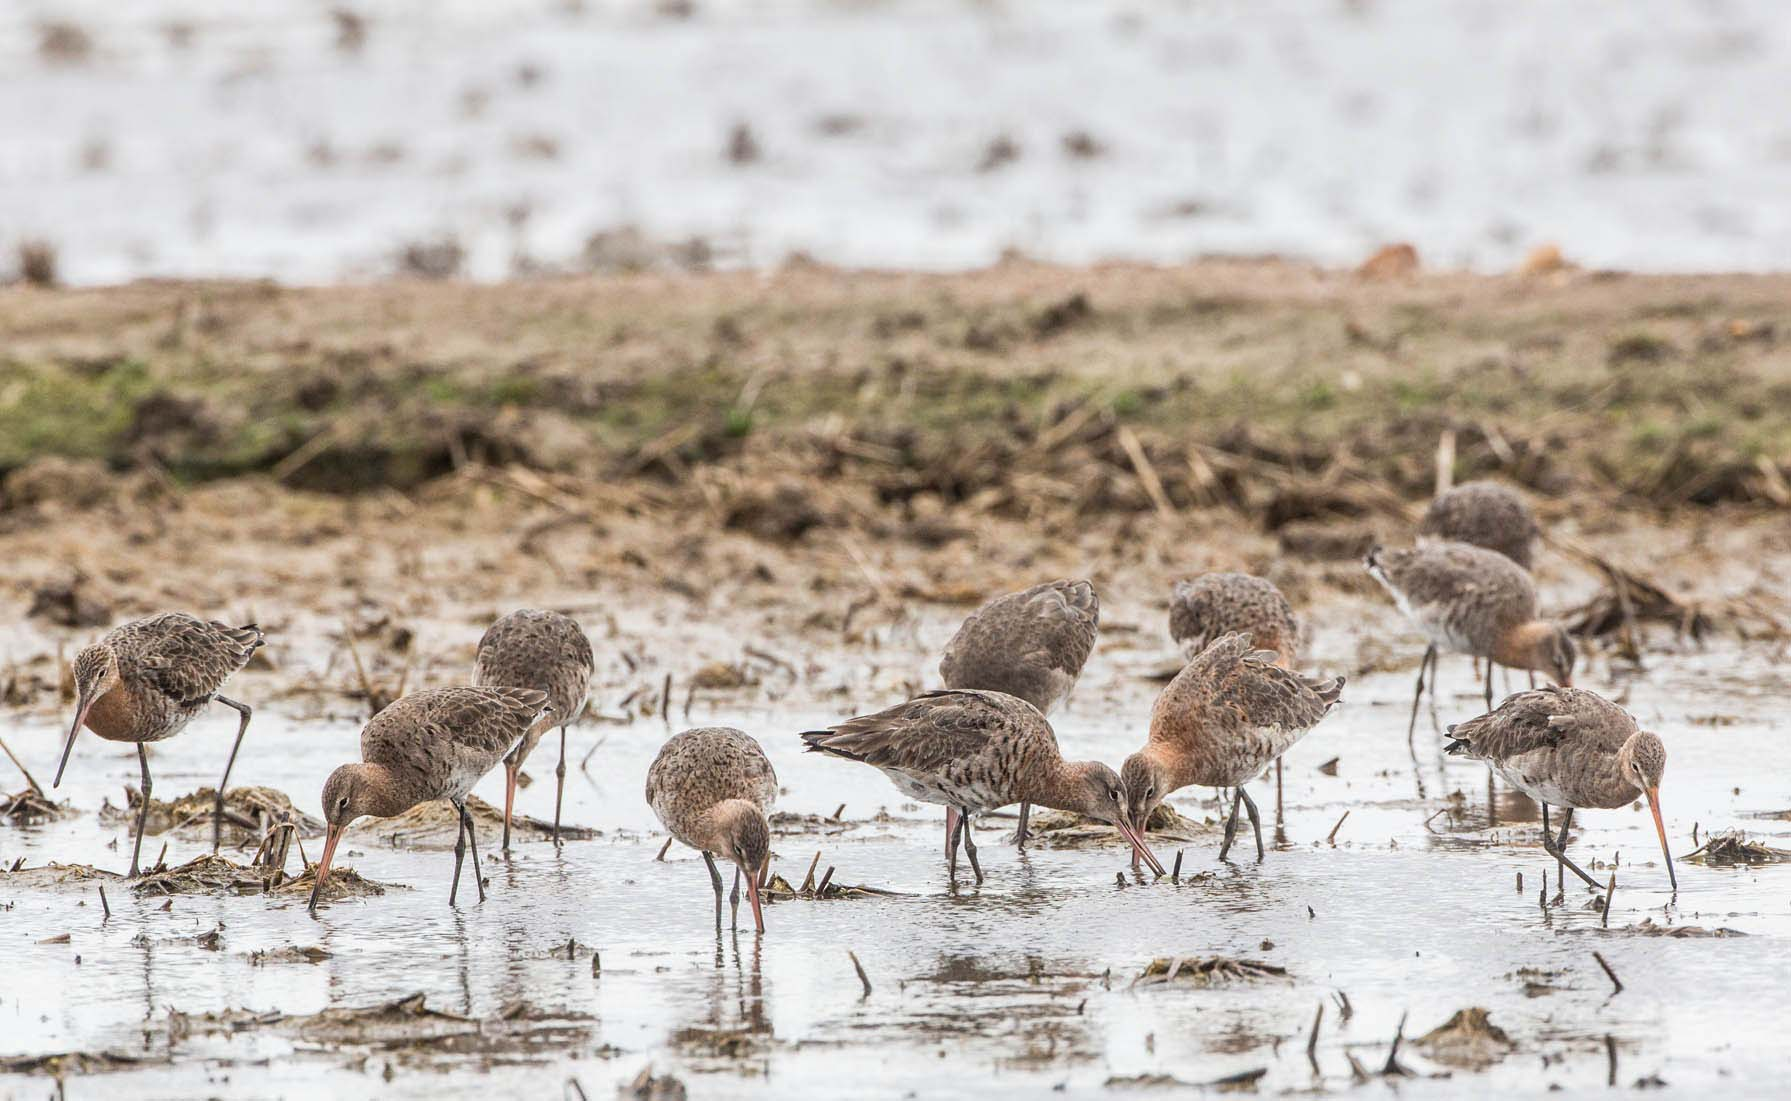 Photo: A flock of black-tailed godwits (Limosa limosa limosa) foraging in a rice field in Extremadura, Spain. Credit: Jan van de Kam